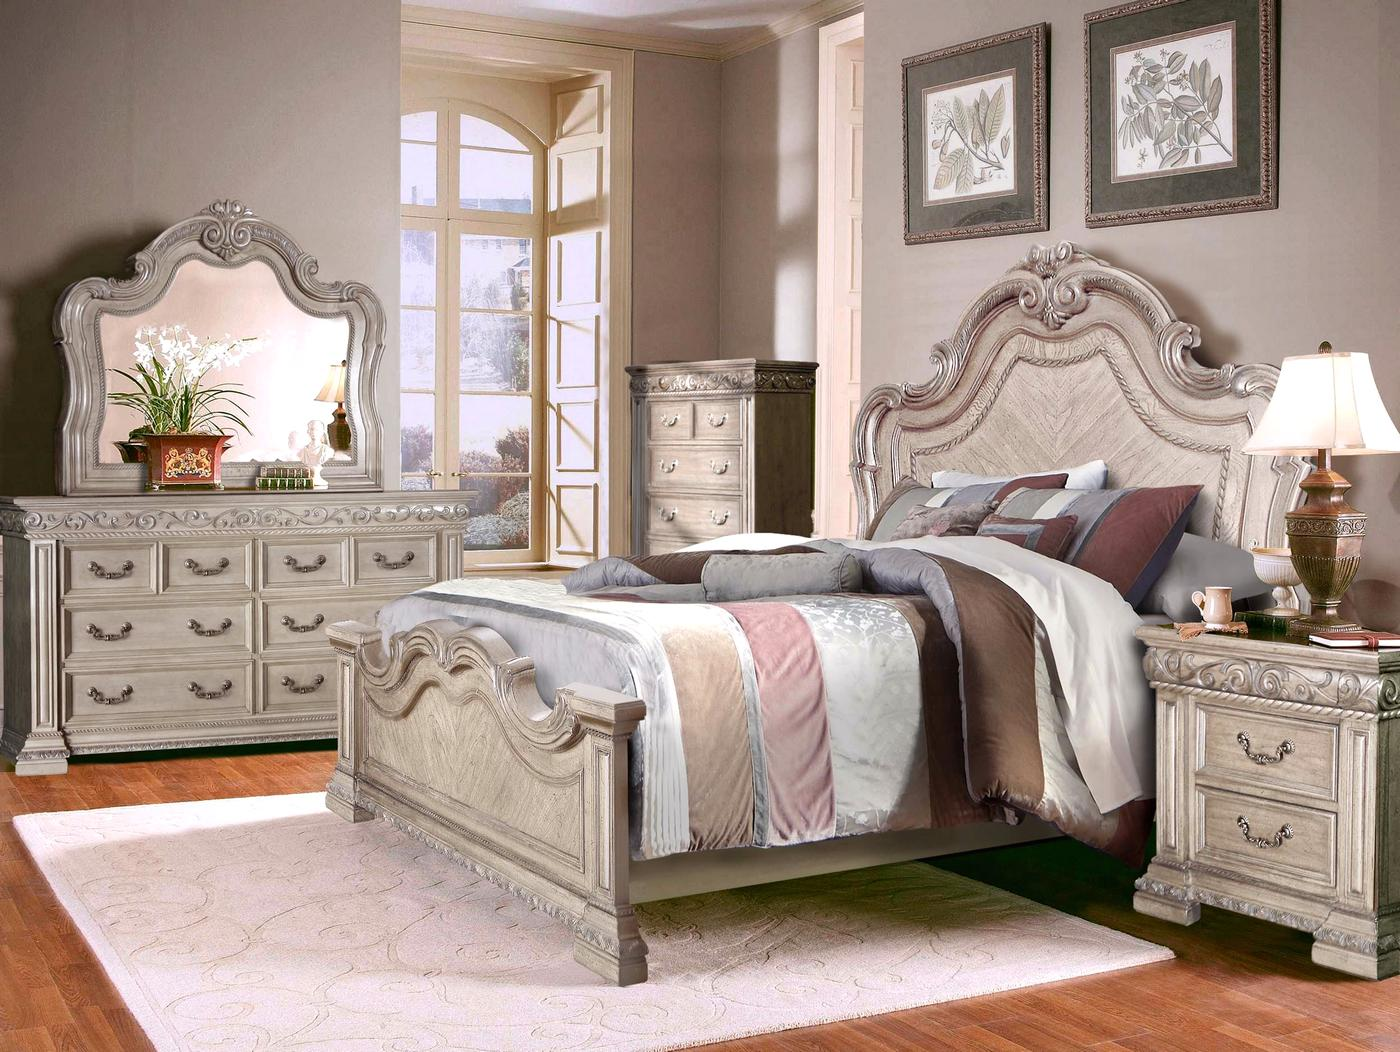 Valentine antique style 4 pc queen bedroom set in antique - White vintage bedroom furniture sets ...